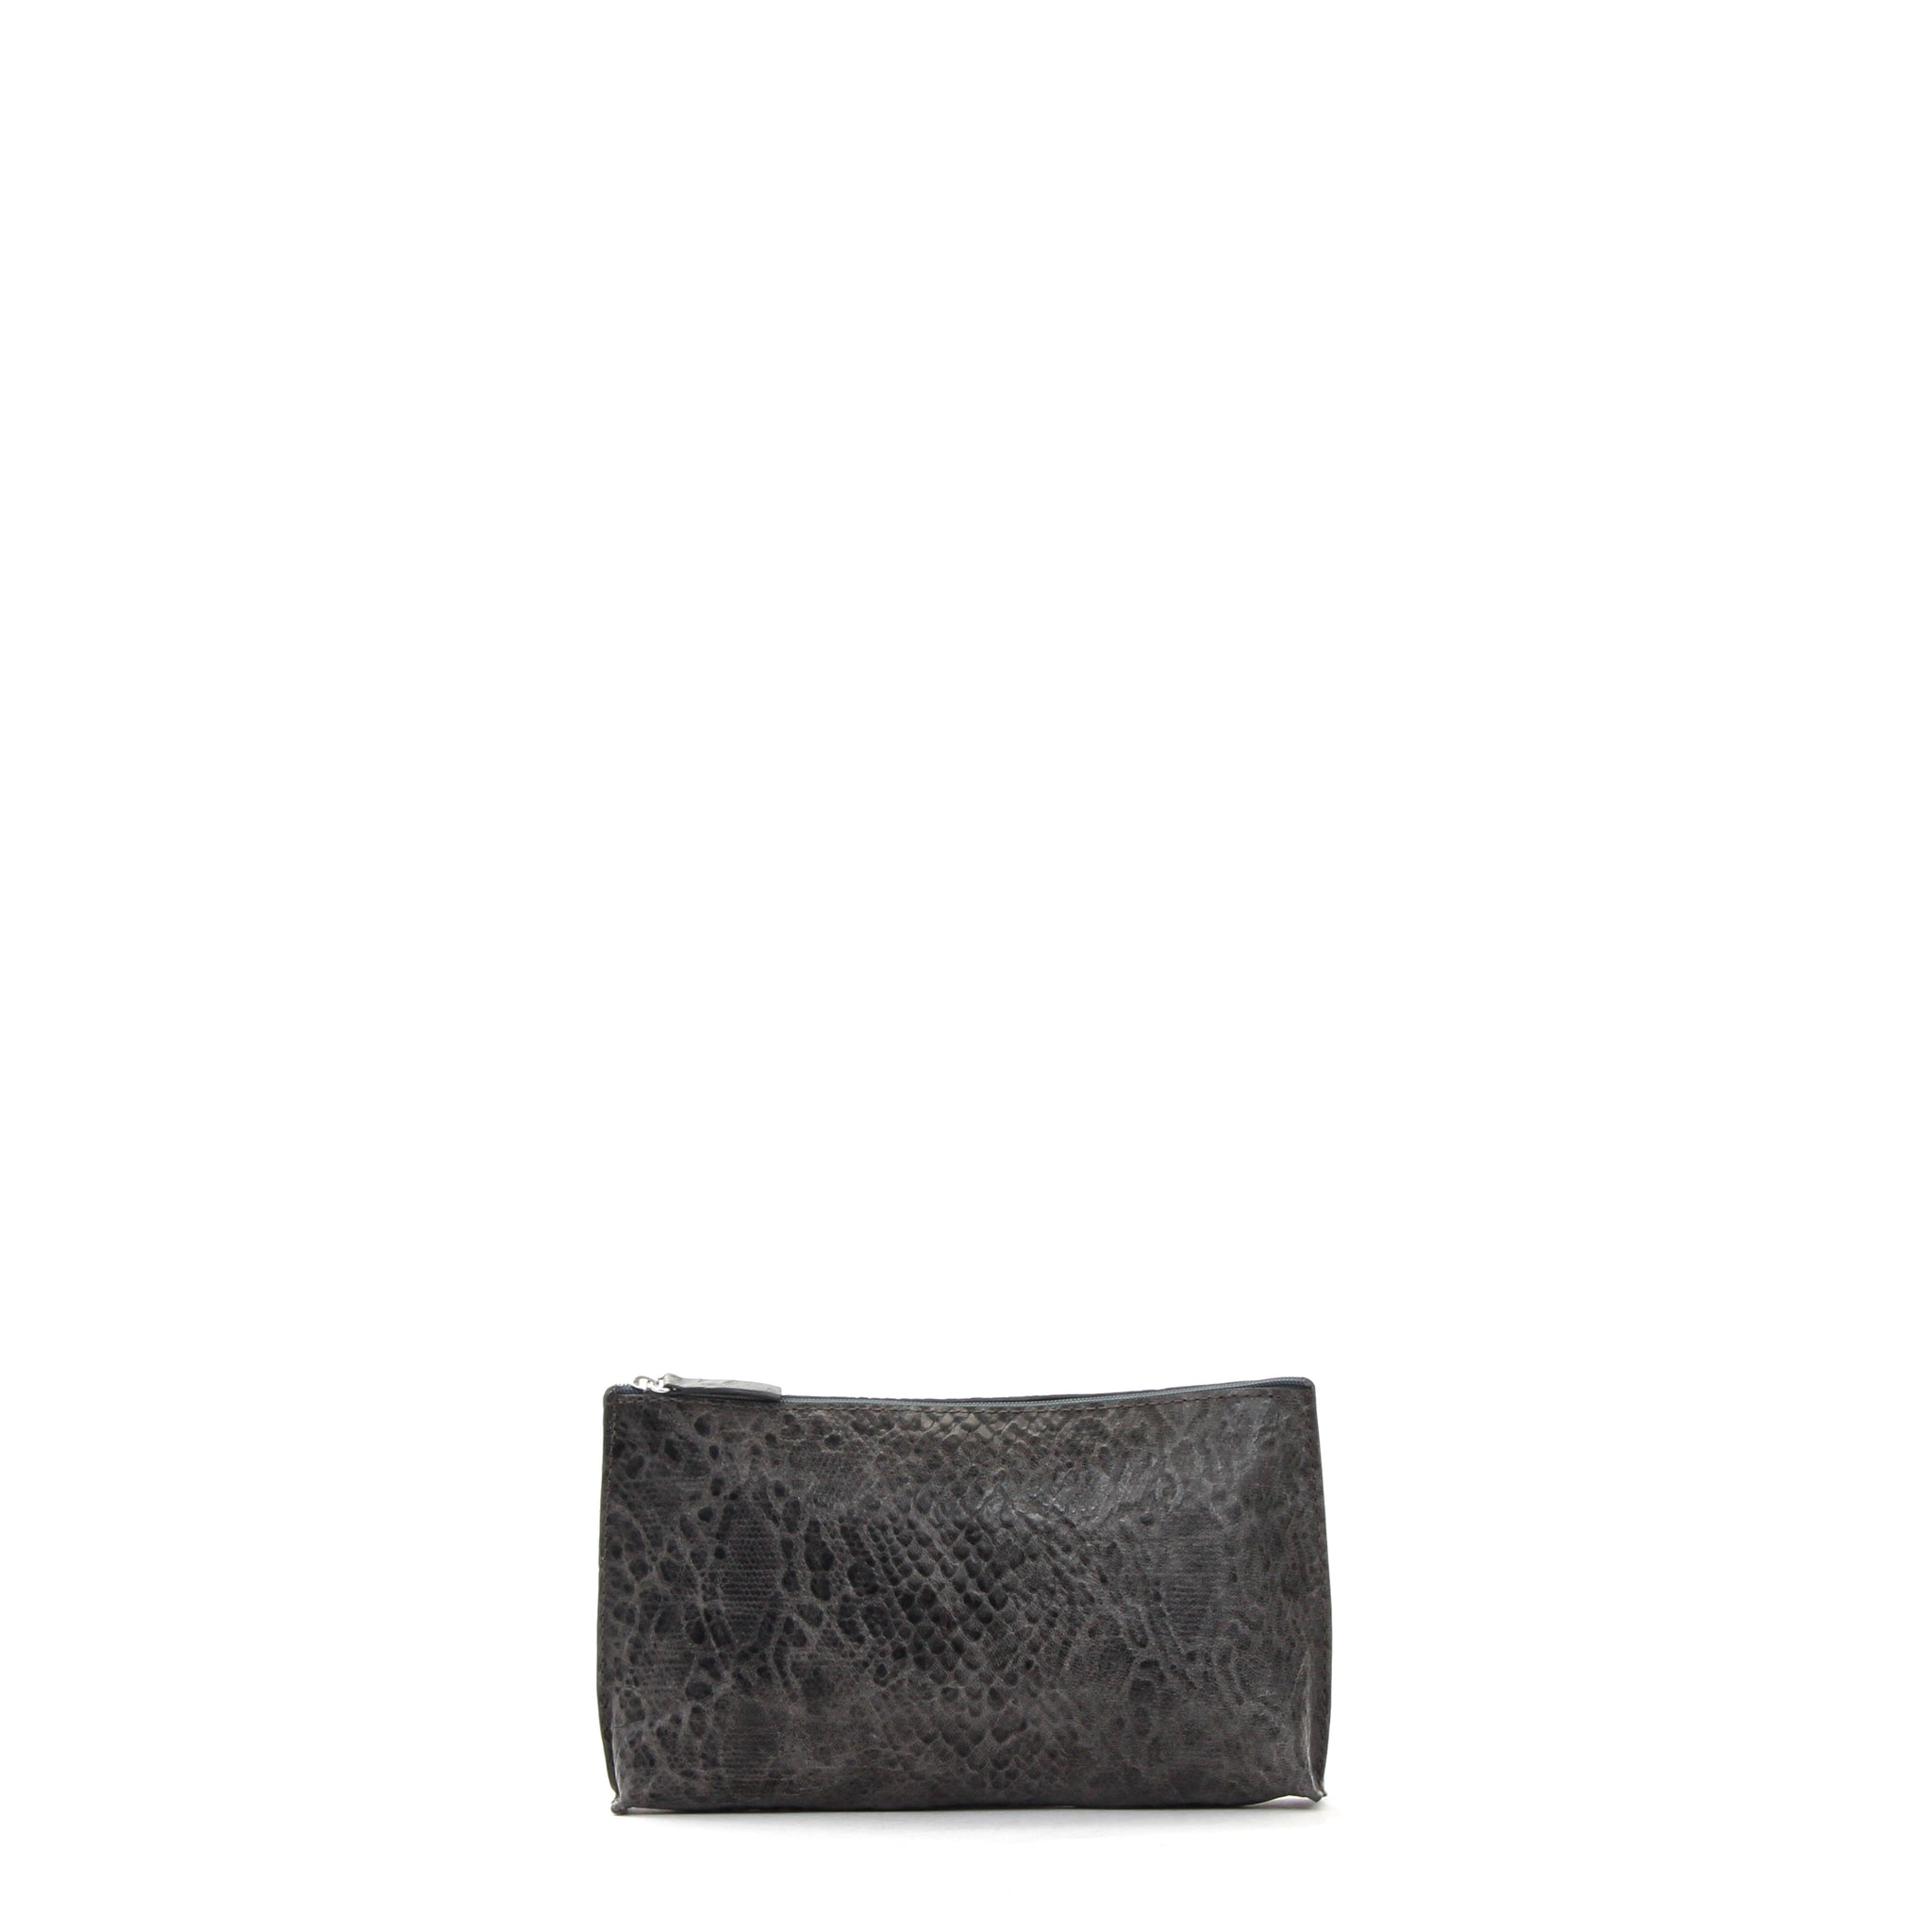 ESSENTIAL POUCH GREY SNAKE PRINT